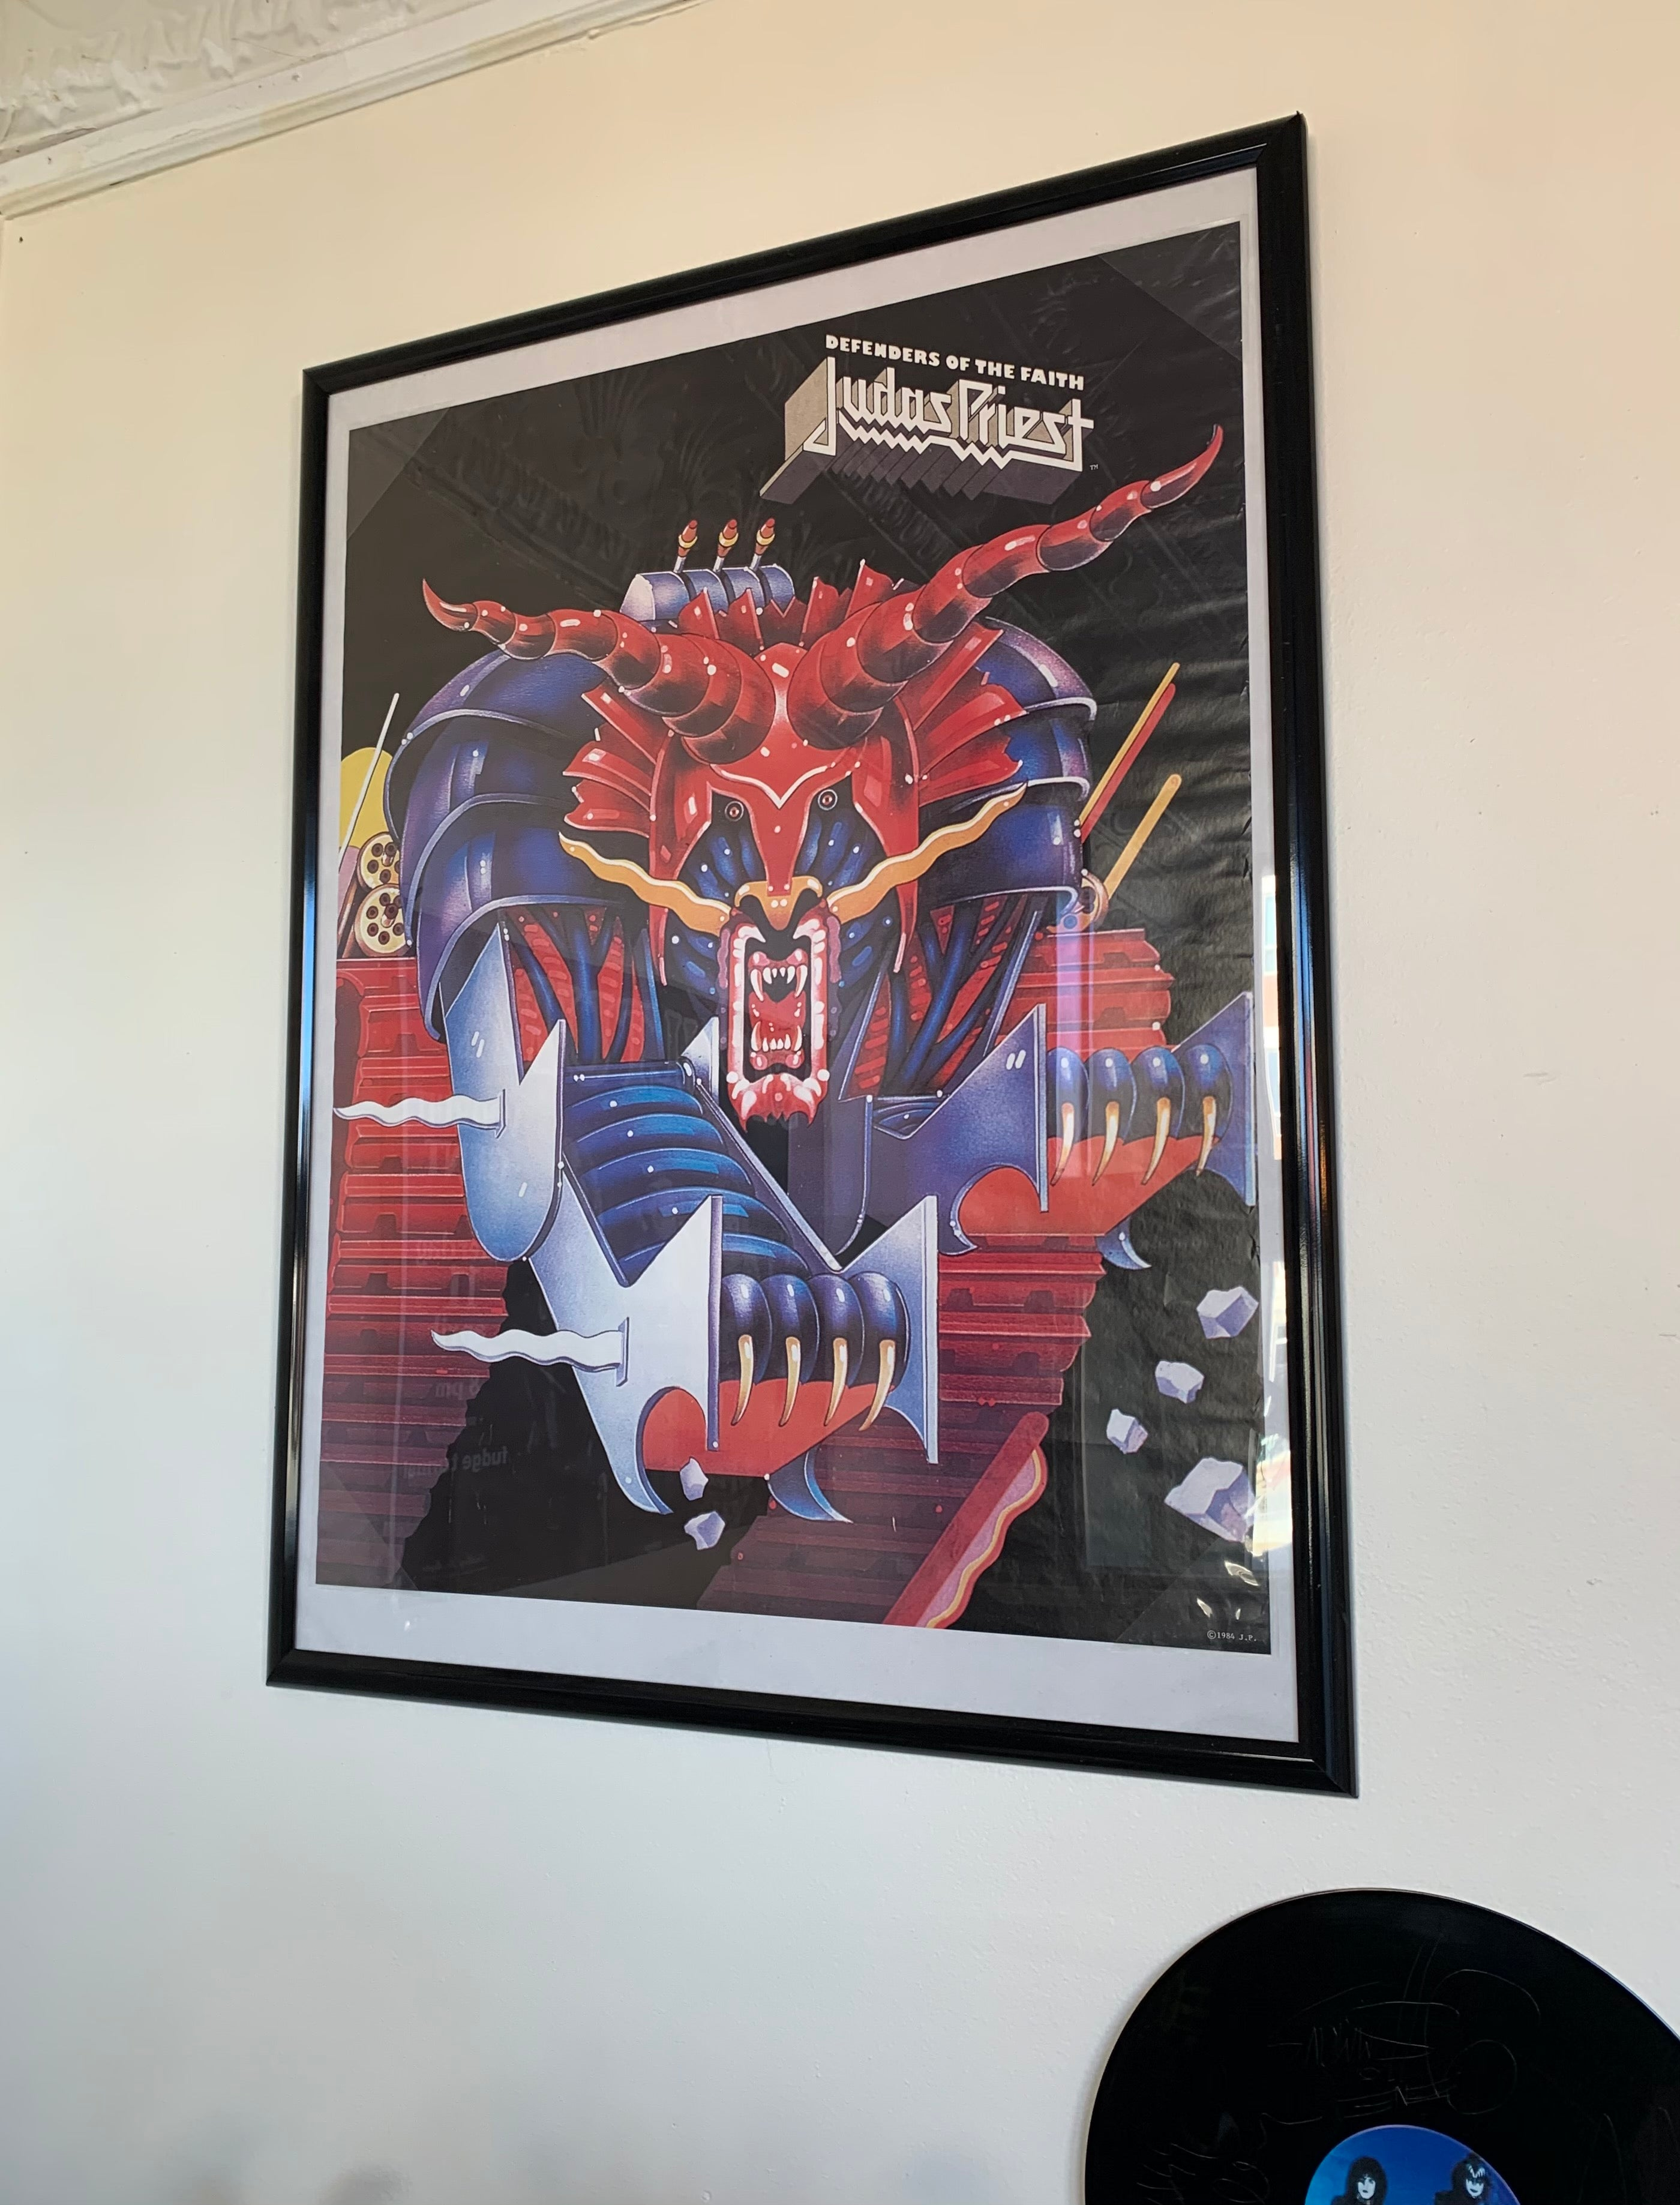 1984 Deadstock Judas Priest Defenders Of The Faith Framed Poster